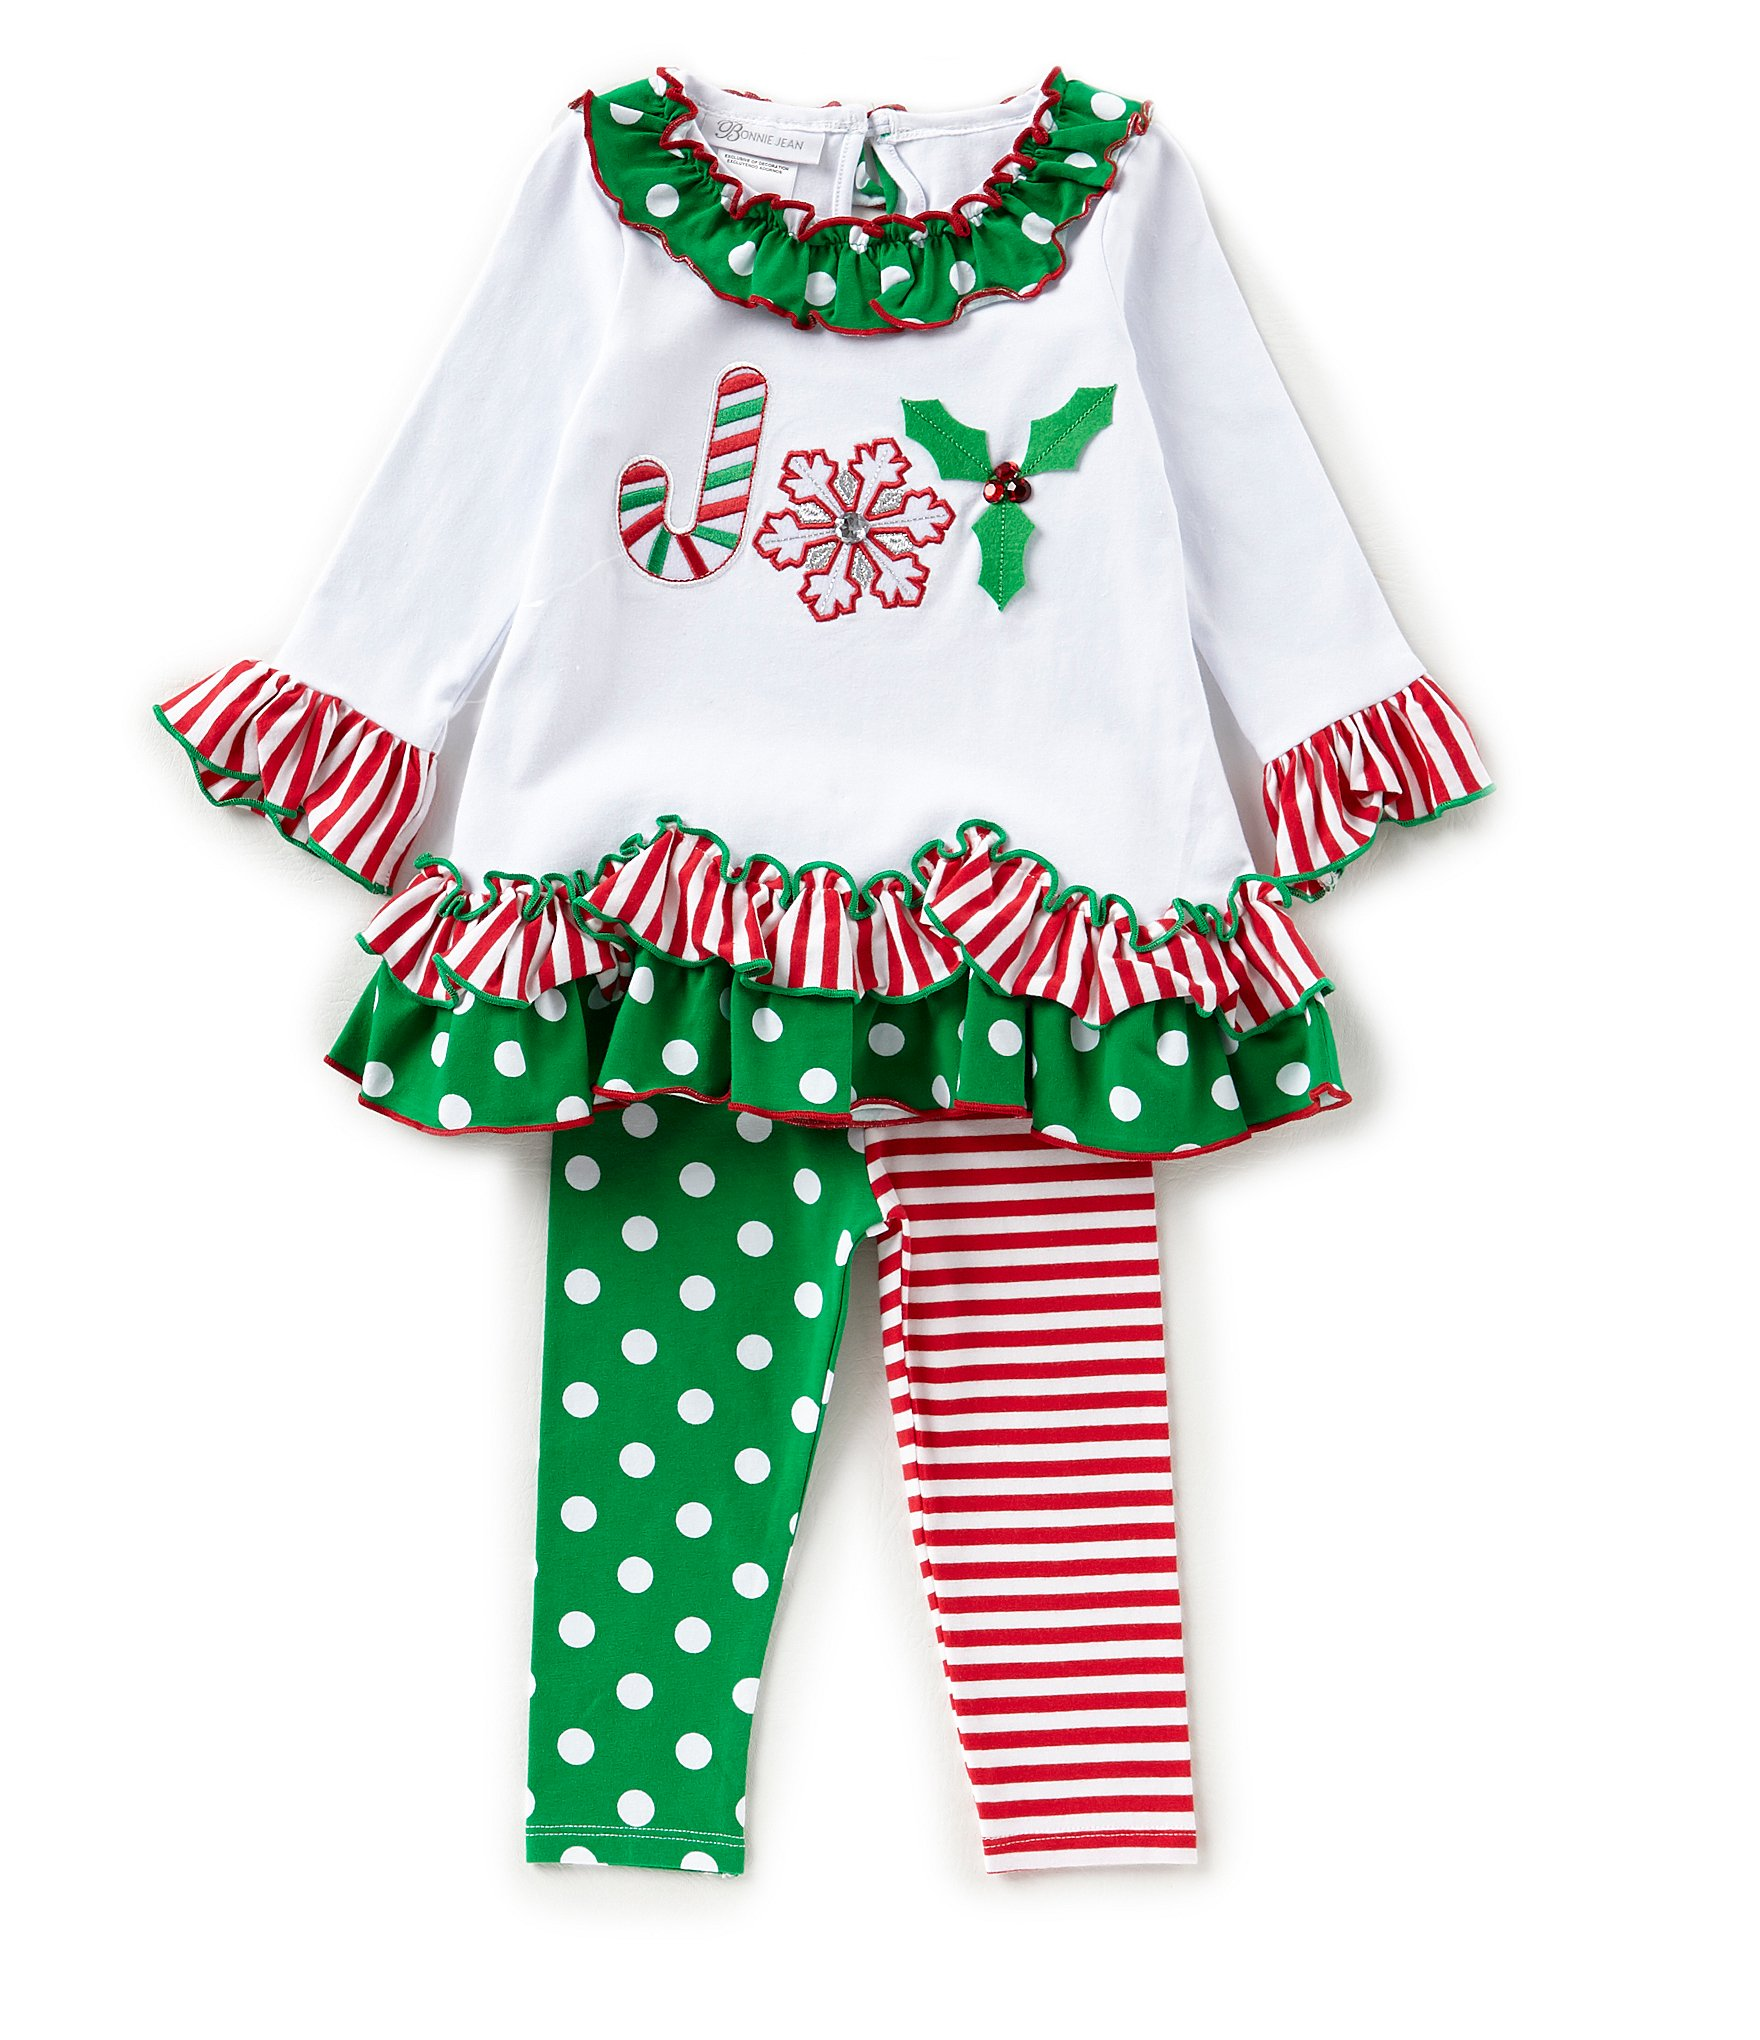 Baby Girl Clothes at Macy's come in a variety of styles and sizes. Shop Baby Girl Clothing at Macy's and find newborn girl clothes, toddler girl clothes, baby dresses and more.